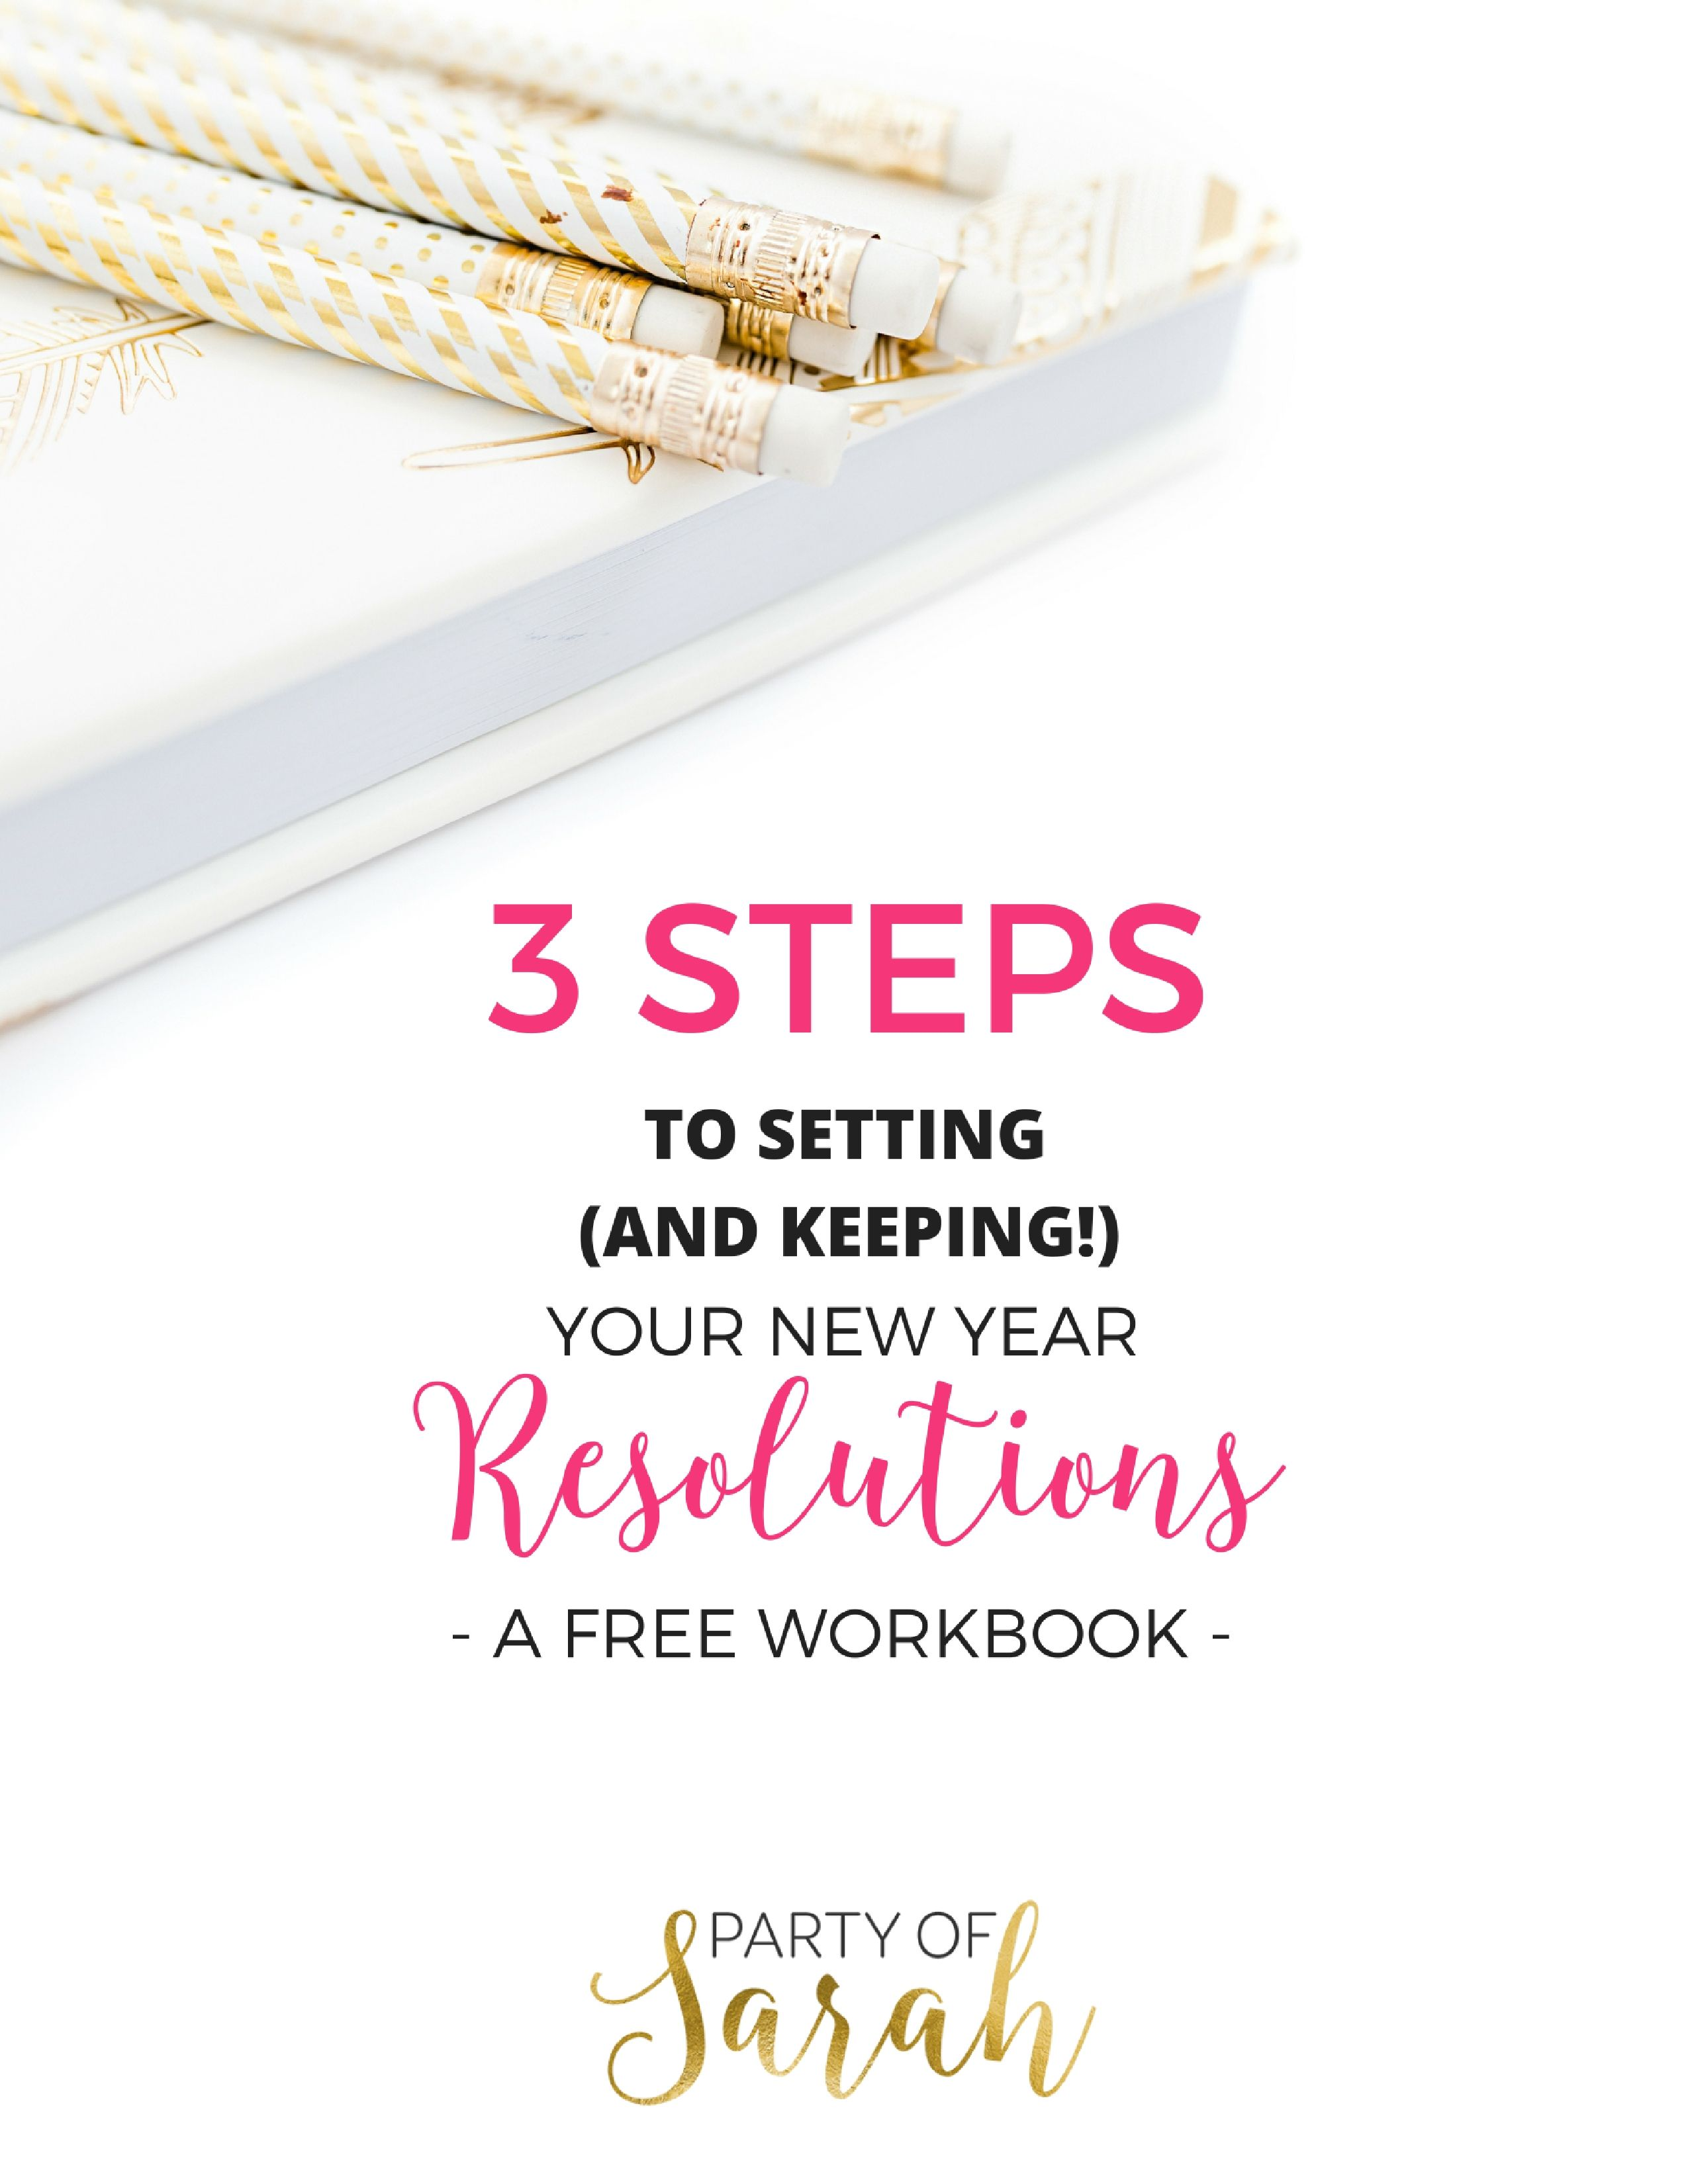 3 Steps To Setting And Keeping Your New Year